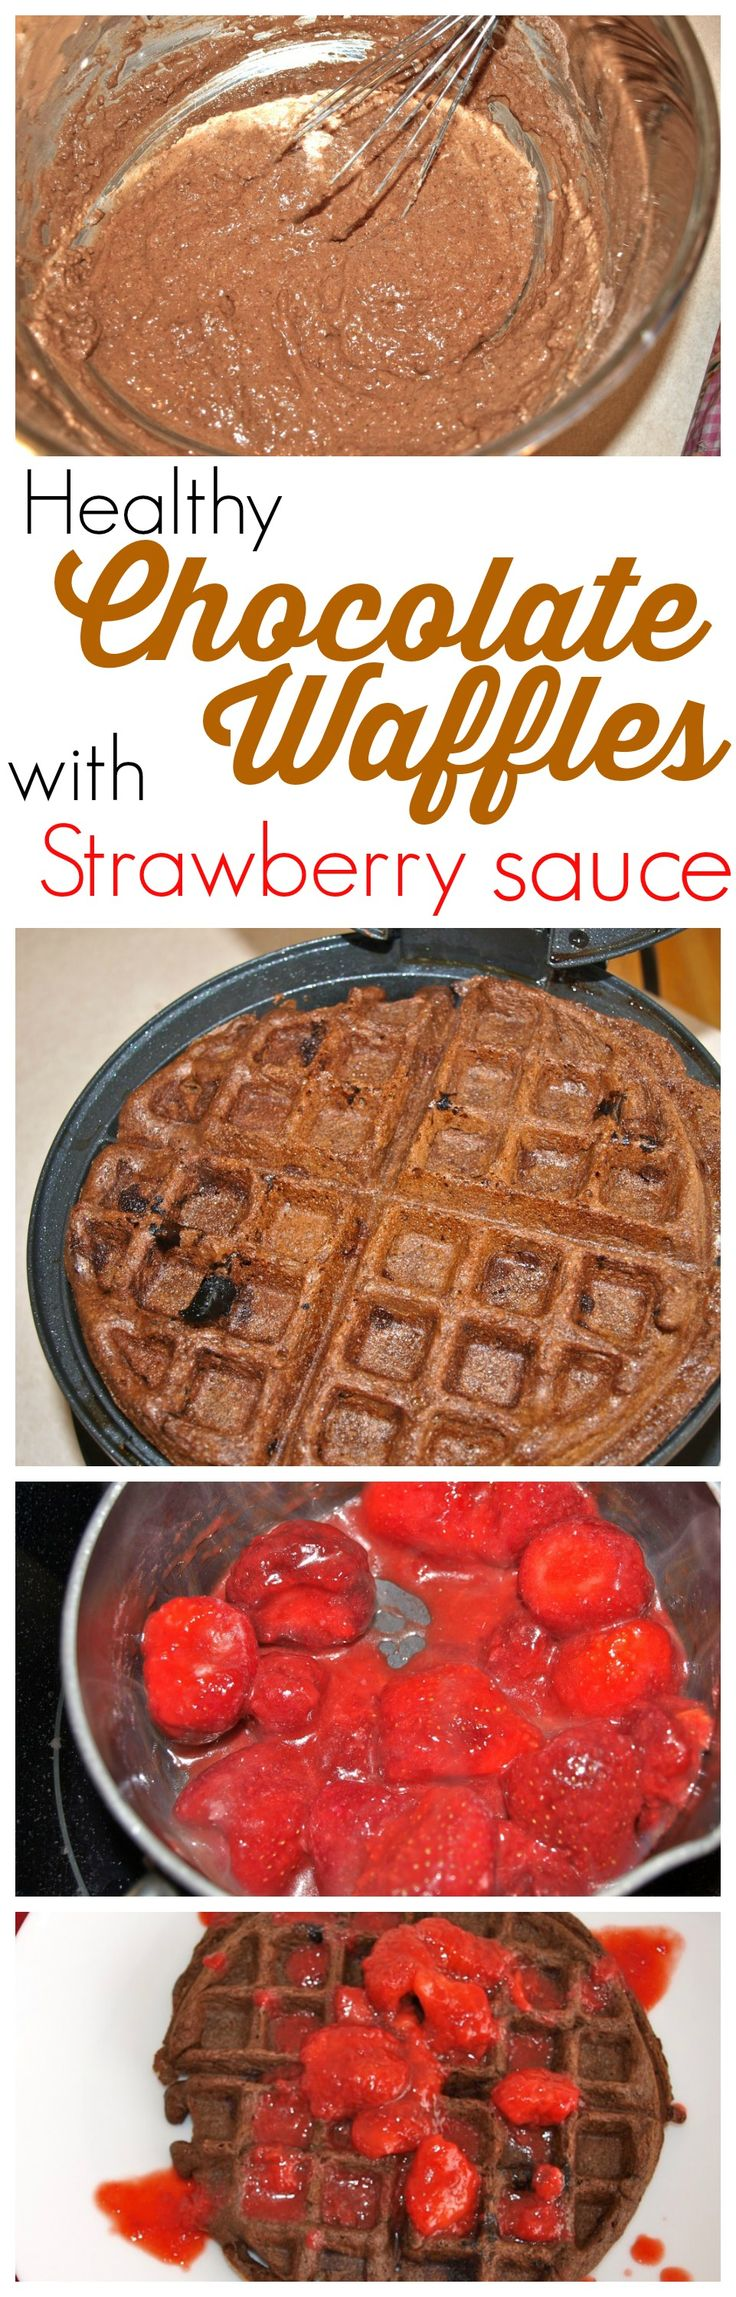 All healthy food should taste this good! These healthy Chocolate Waffles with Strawberry Sauce are AMAZING! Fabulous healthy , clean-eating recipe.